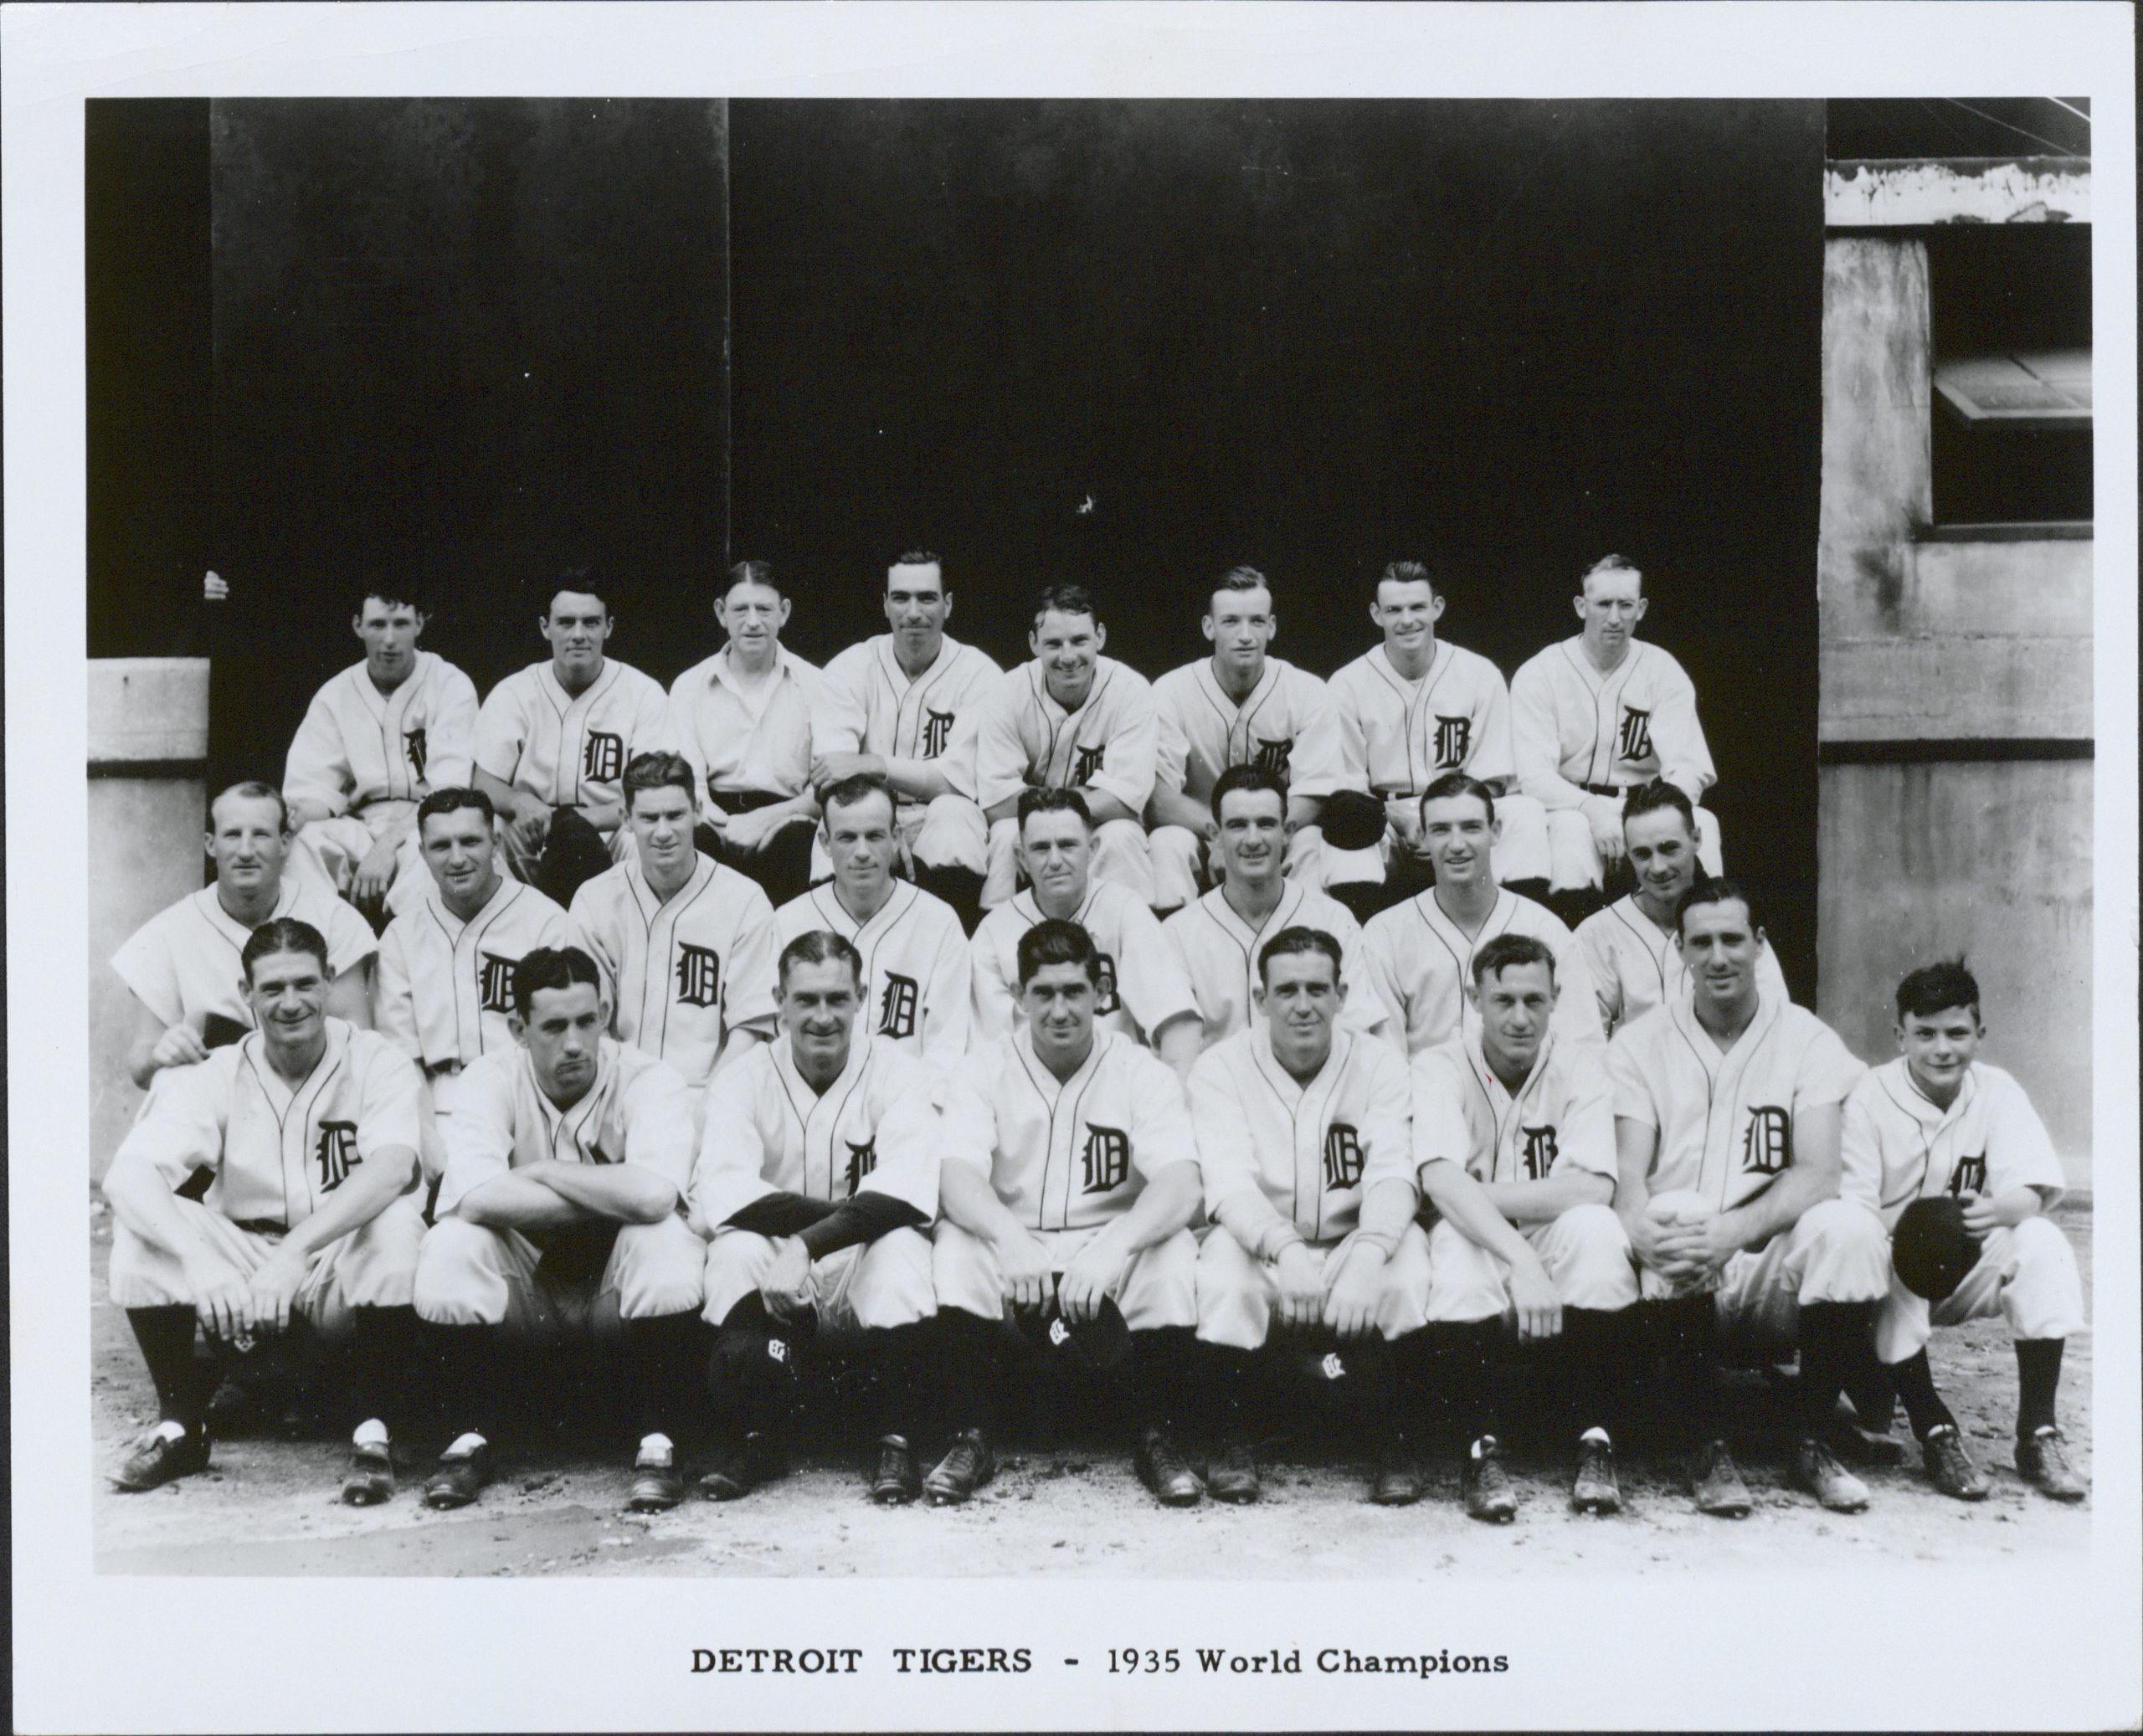 Old photo of baseball team